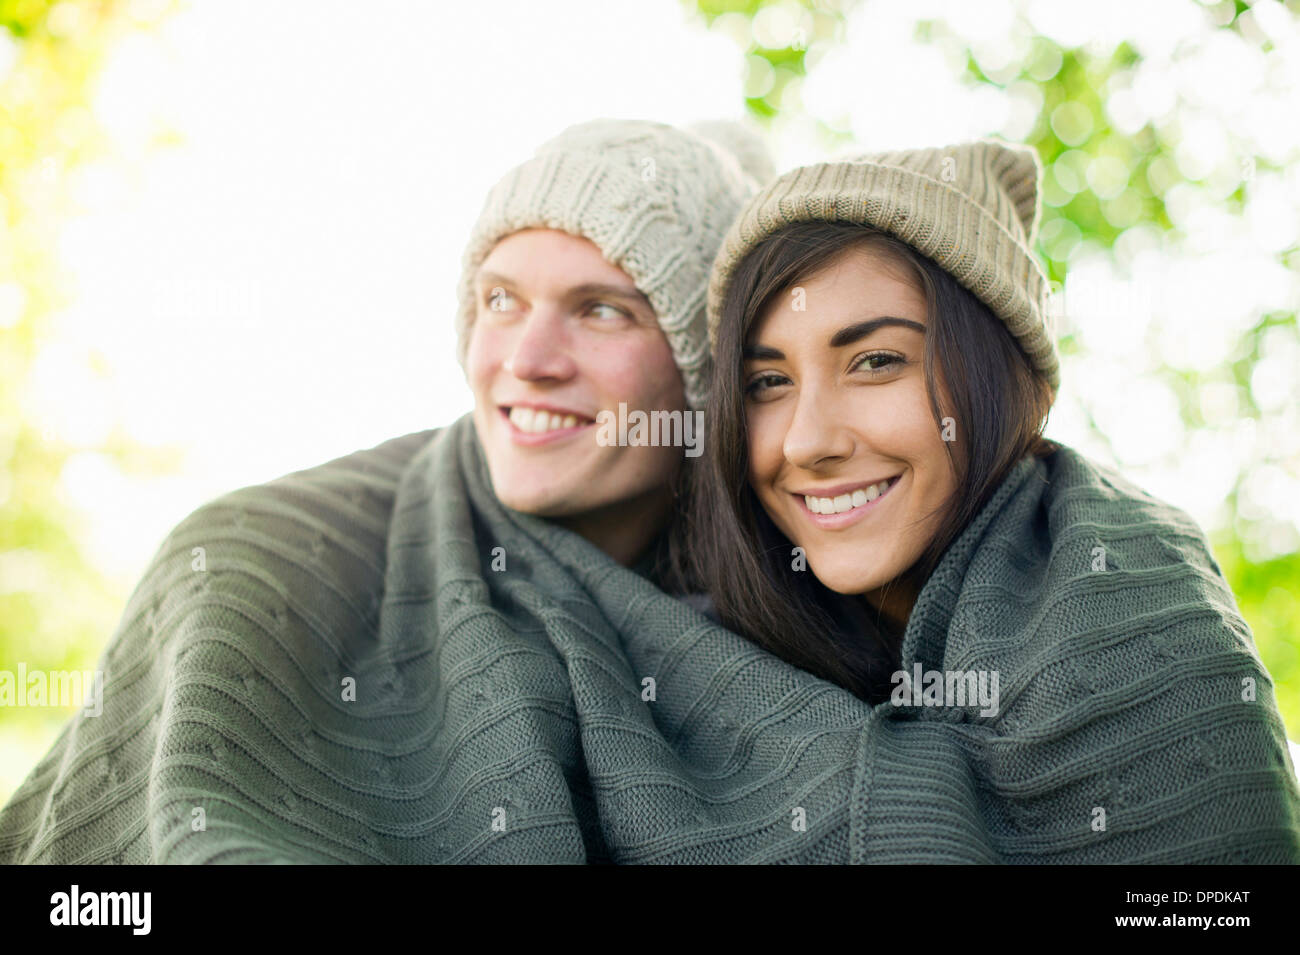 Young couple wearing knit hats wrapped in blanket - Stock Image